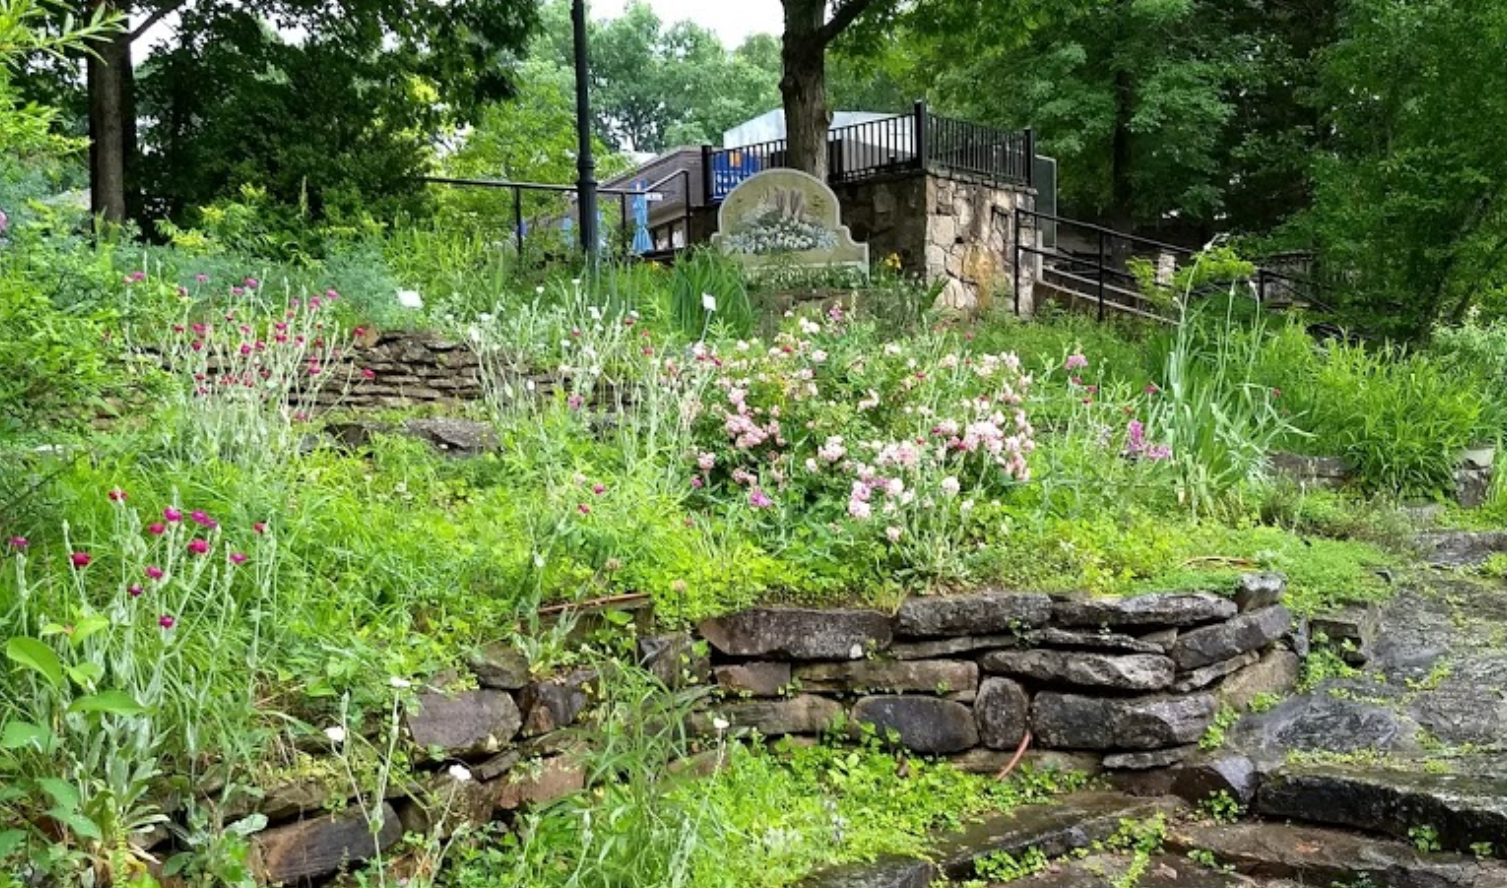 The Ozark Folk Center State Park In Arkansas Is One-Of-A-Kind